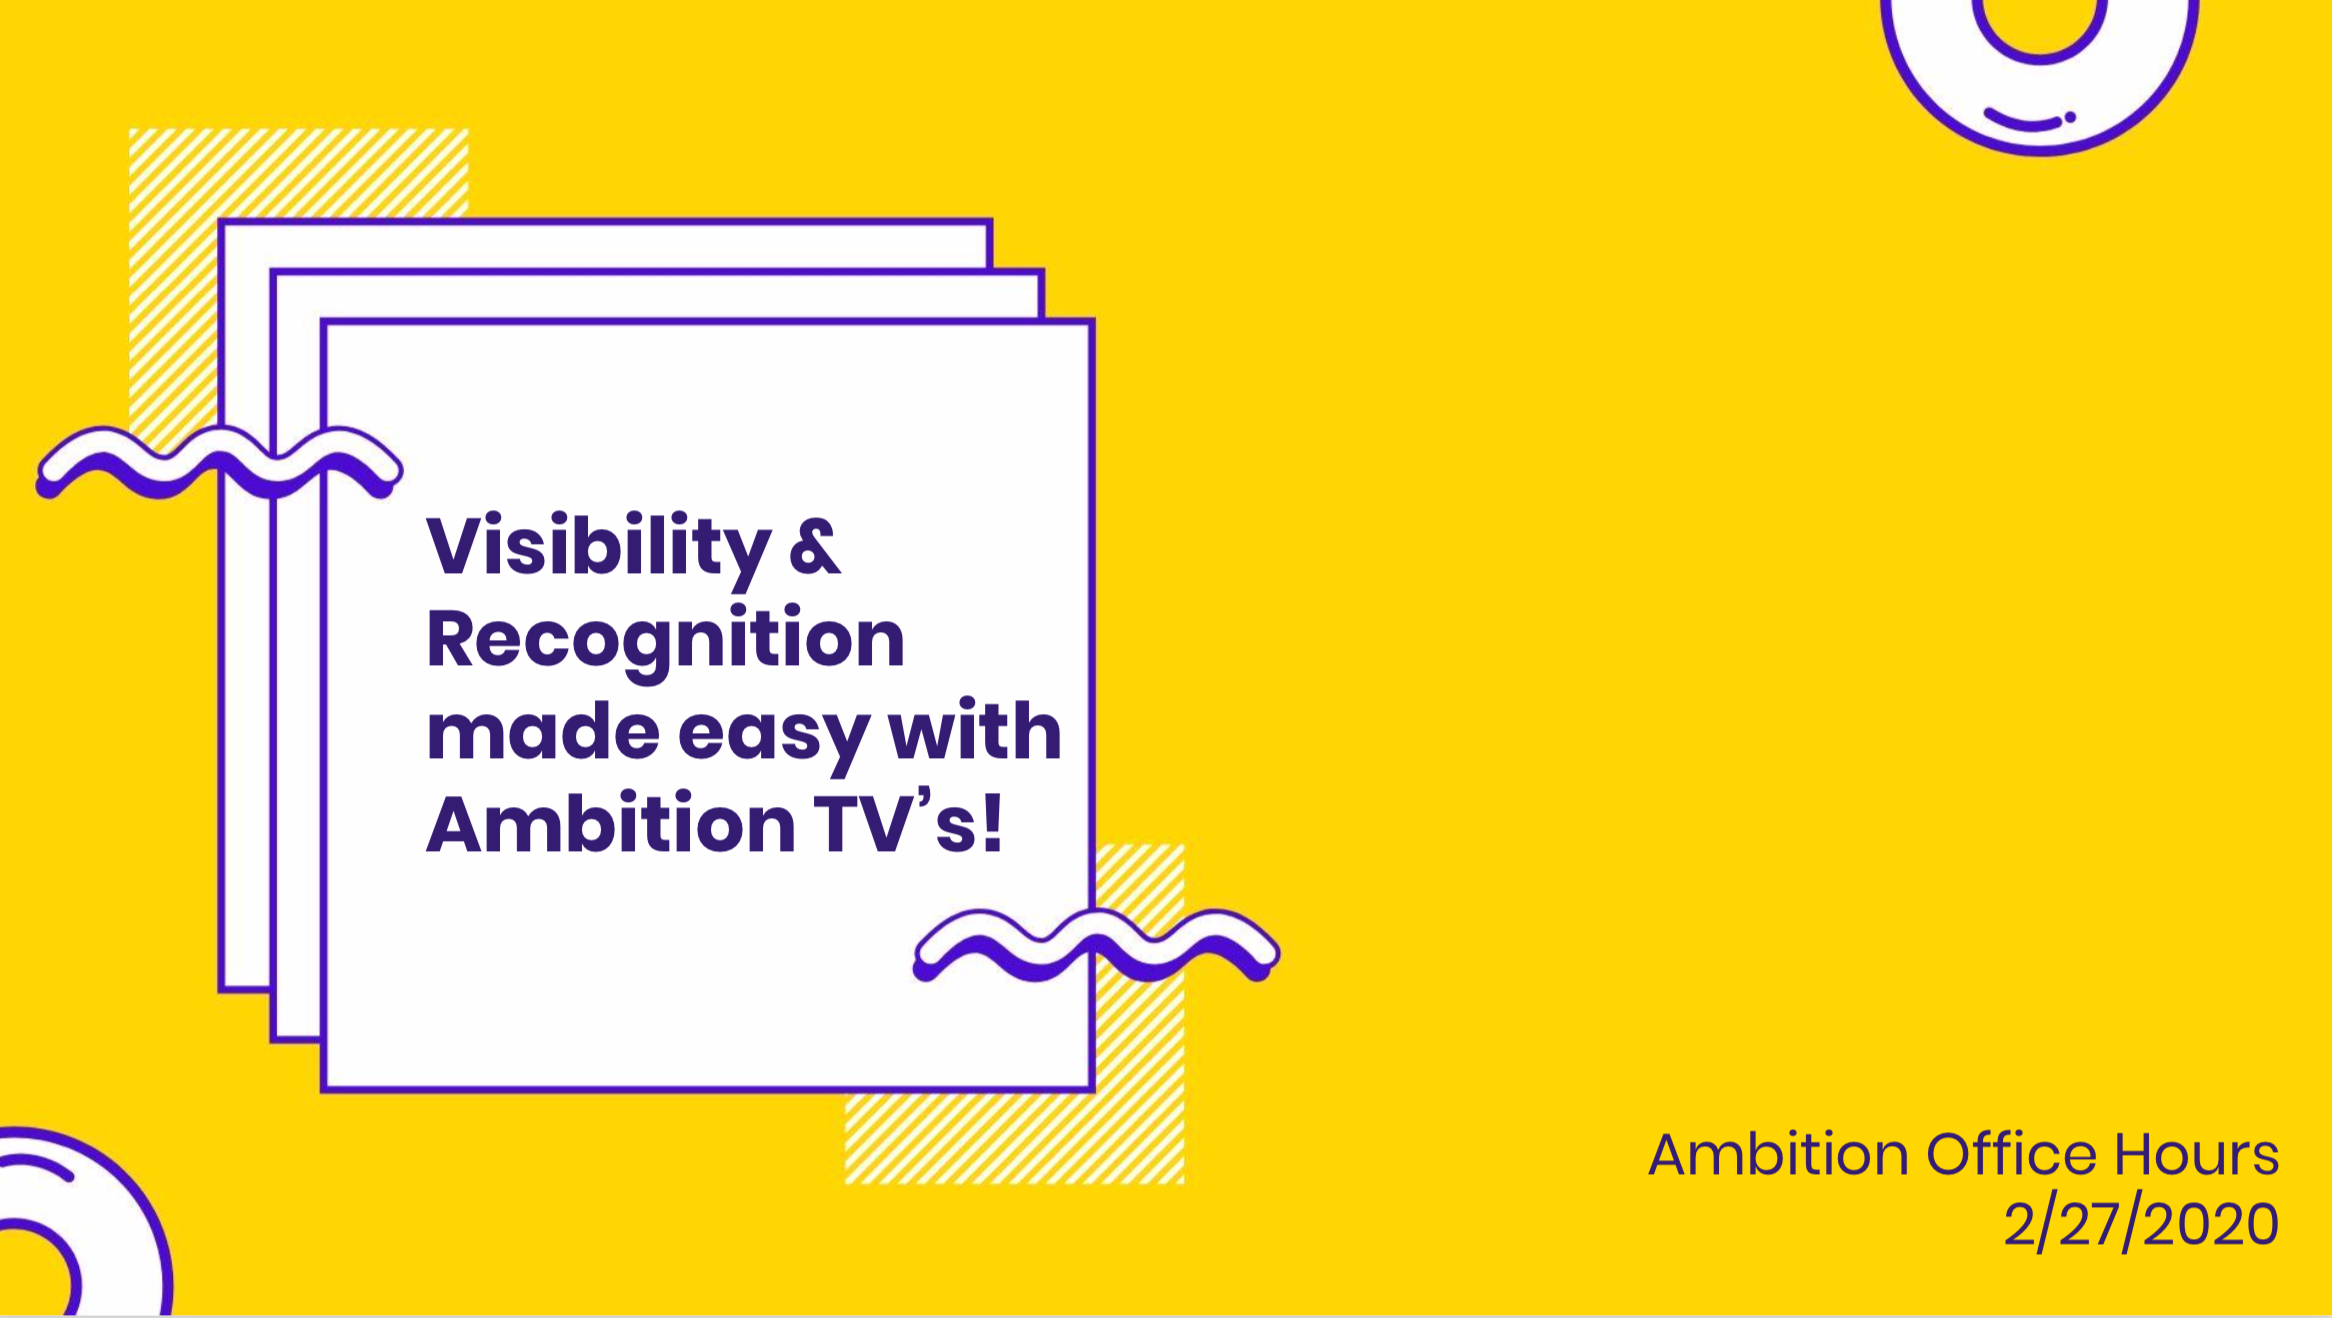 Visibility and recognition made easy with Ambition TVs